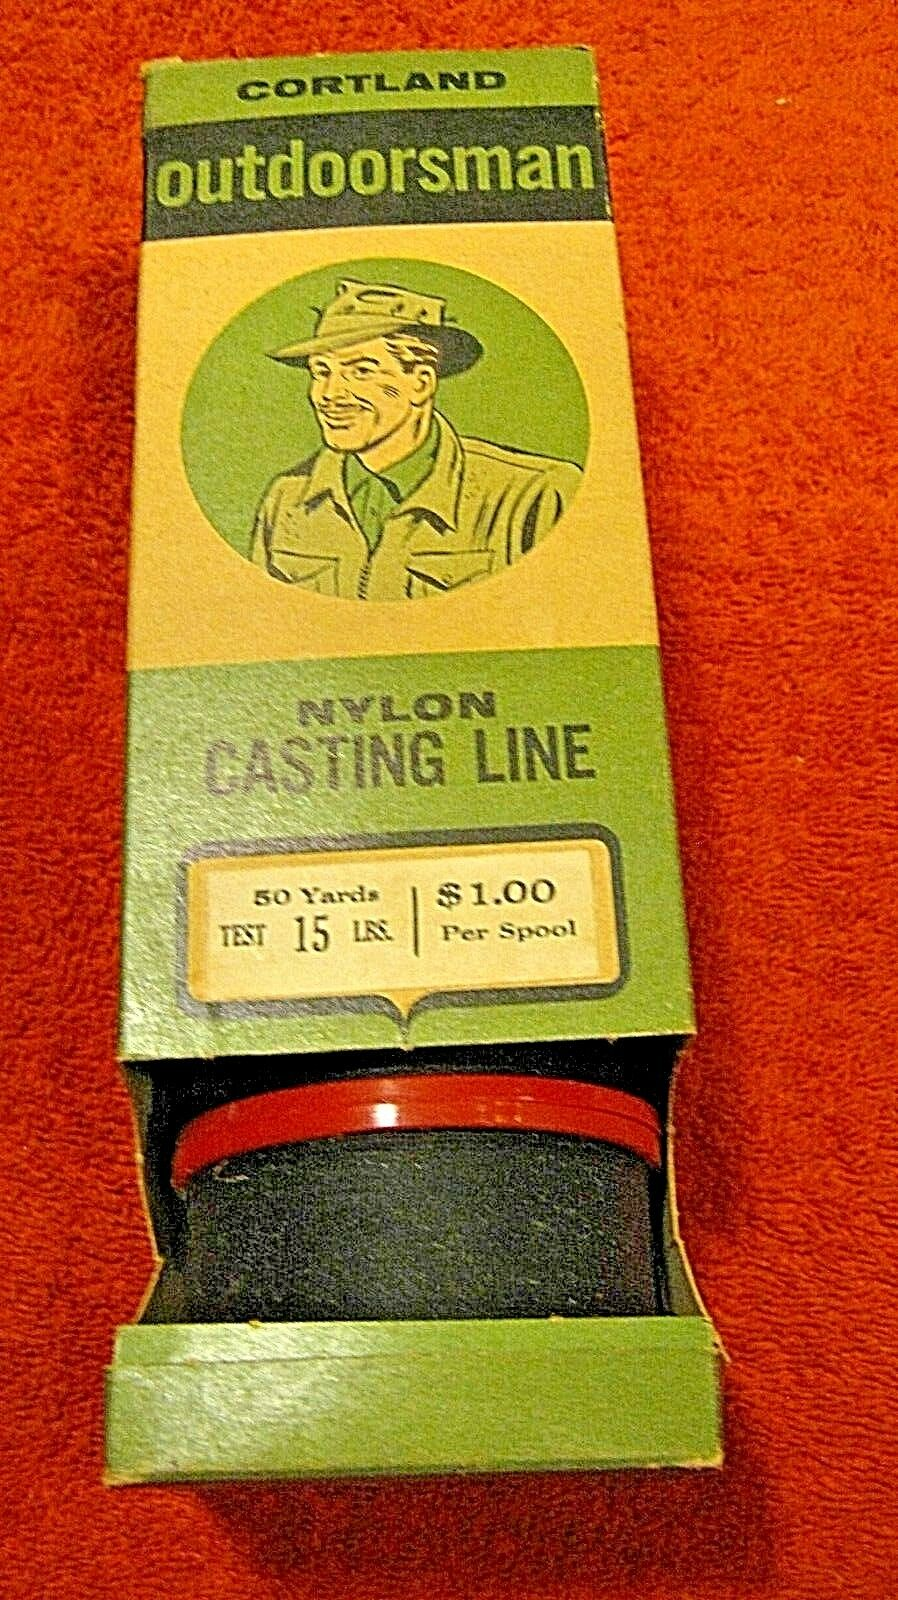 CORTLAND OUTDOORSMAN  NYLON Casting line and sales display-5 connected spools  sell like hot cakes